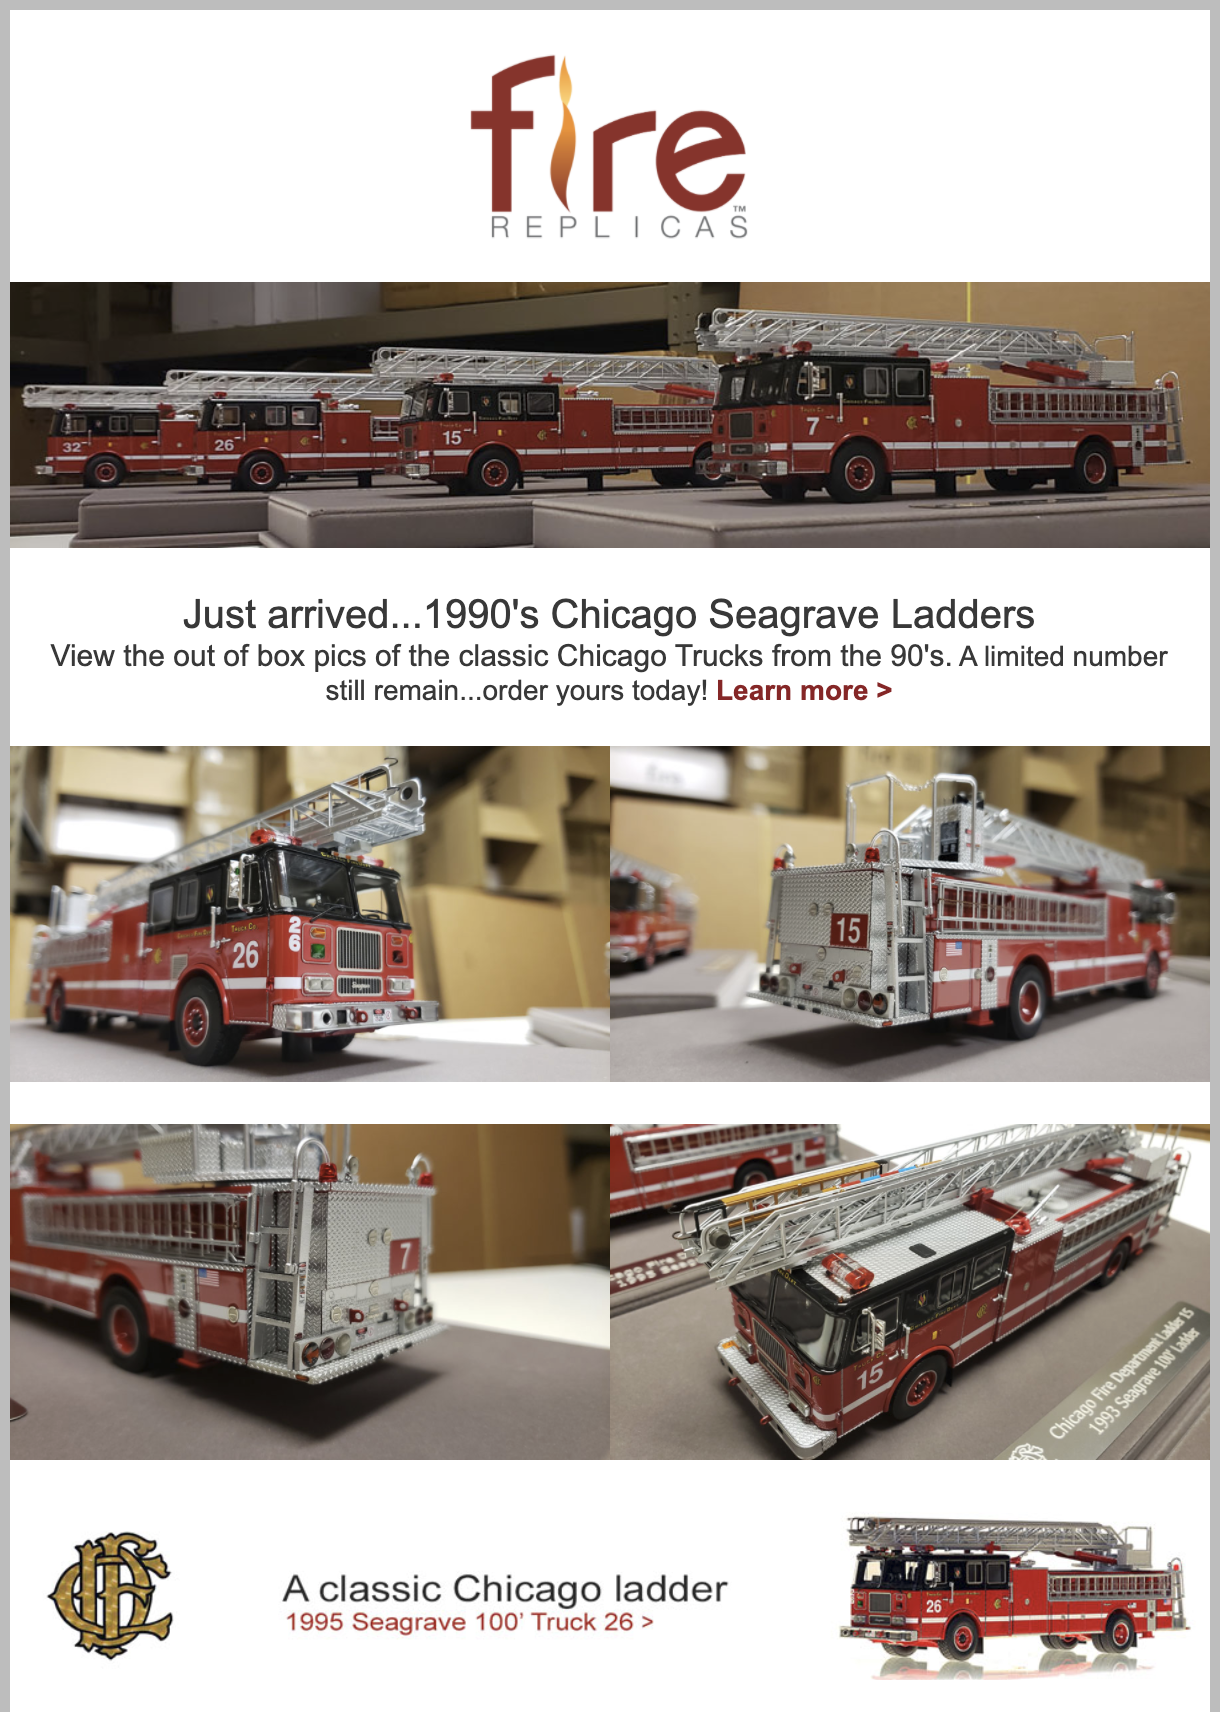 Fire Replicas 1990's Chicago Seagrave Ladders